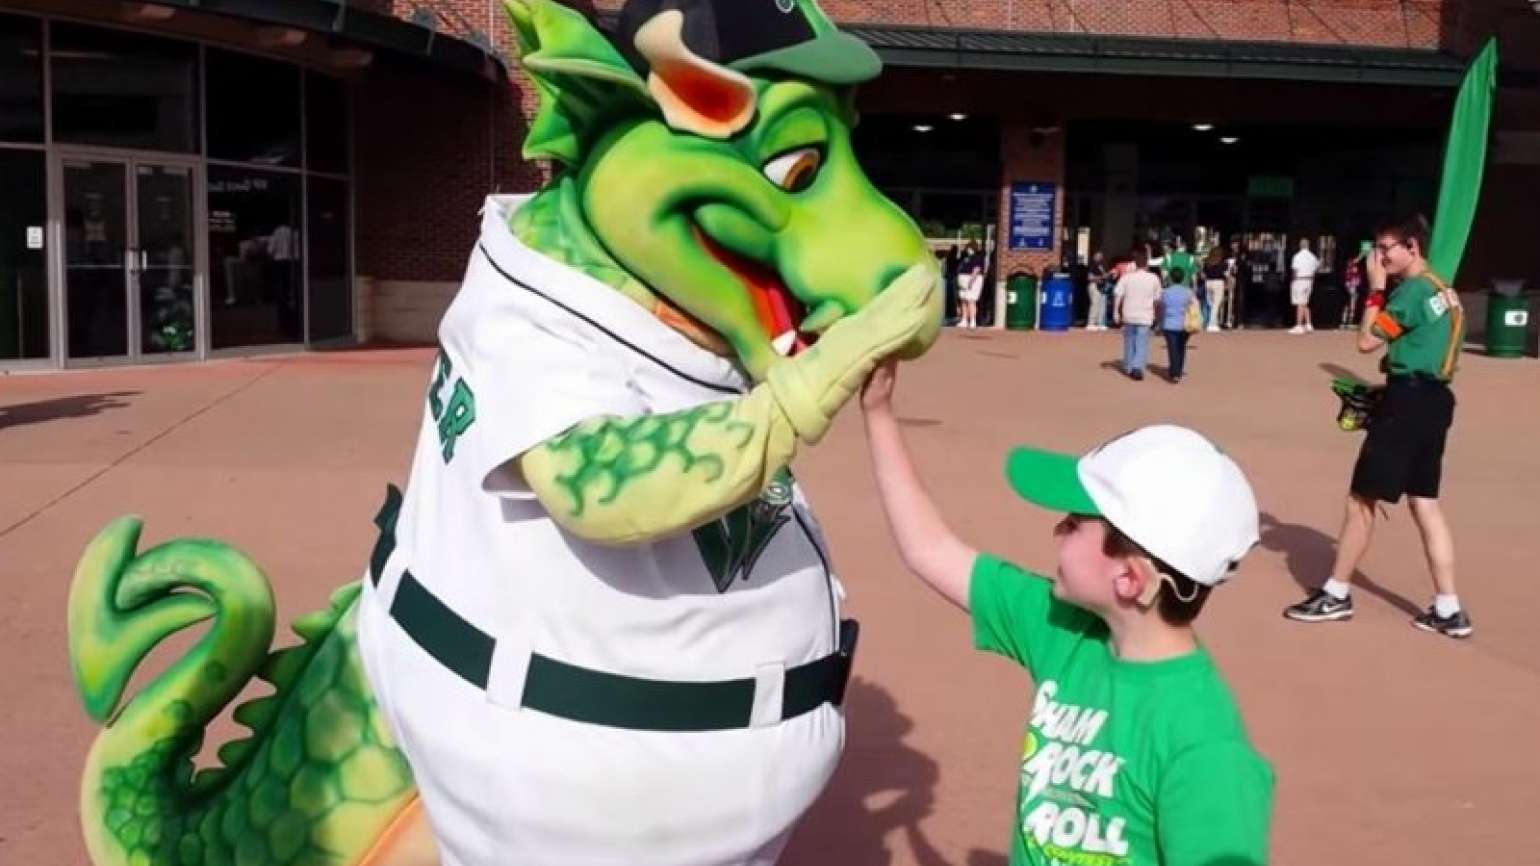 Hunter enthusiastically high fives Heater, the Dragons mascot